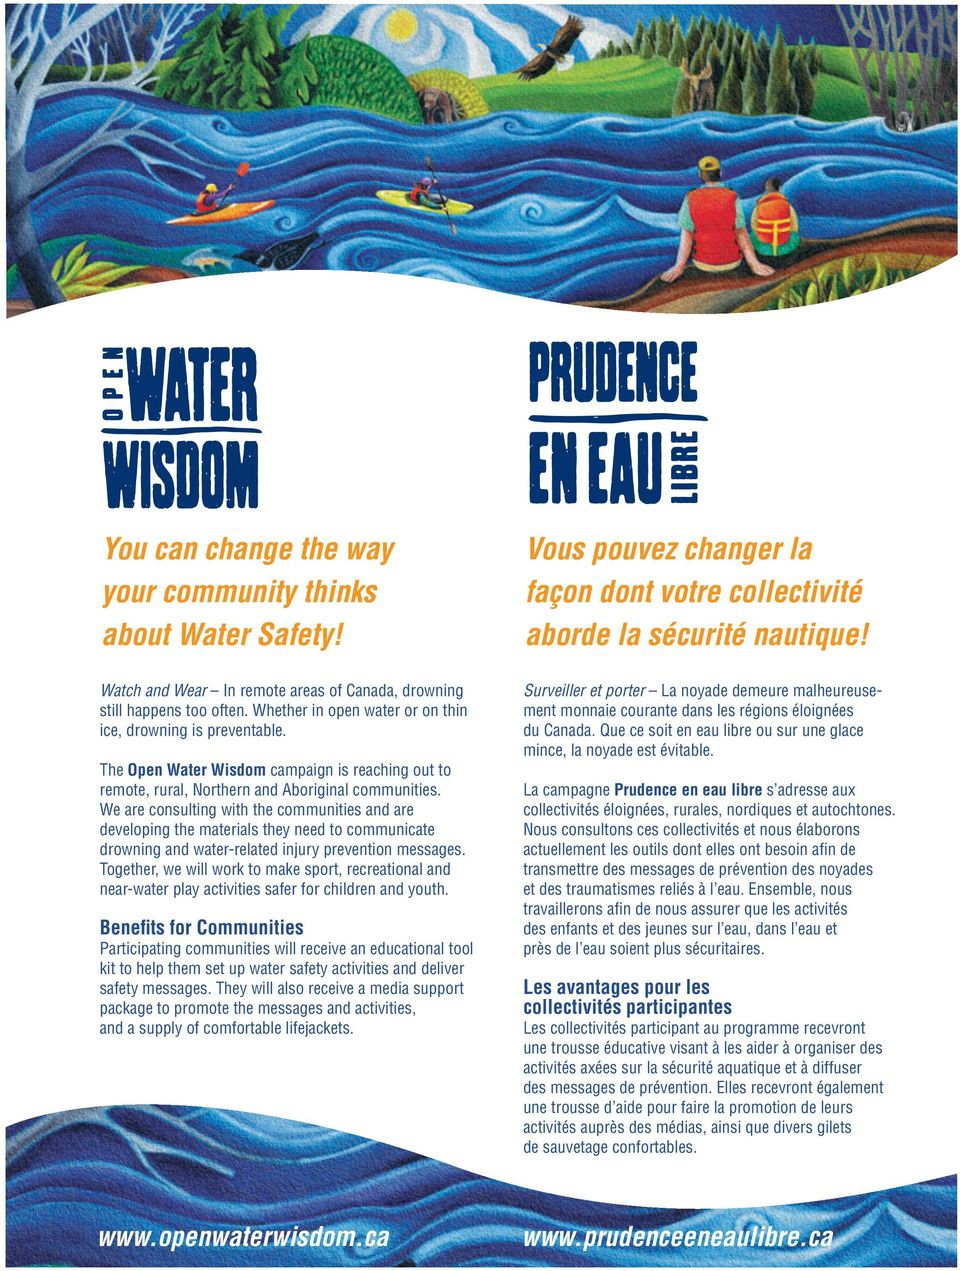 The Open Water Wisdom campaign is reaching out to remote, rural, Northern and Aboriginal communities.